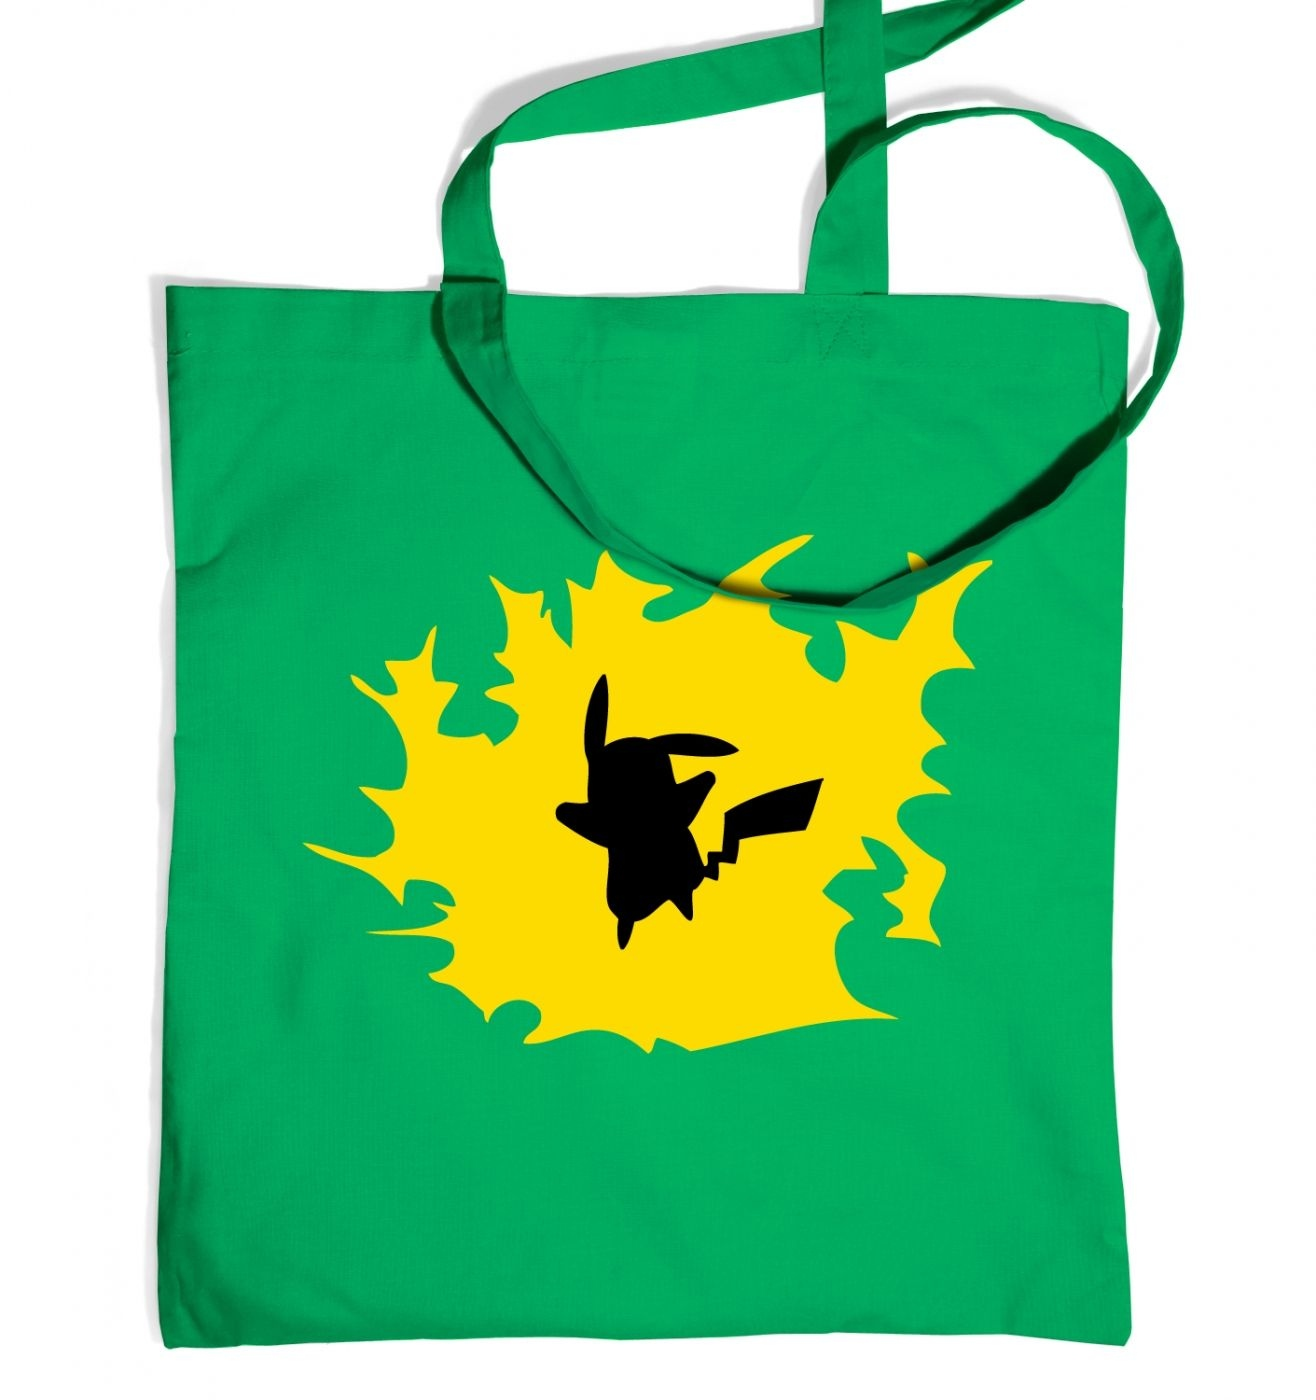 Yellow Pikachu Silhouette Tote Bag - Inspired by Pokemon